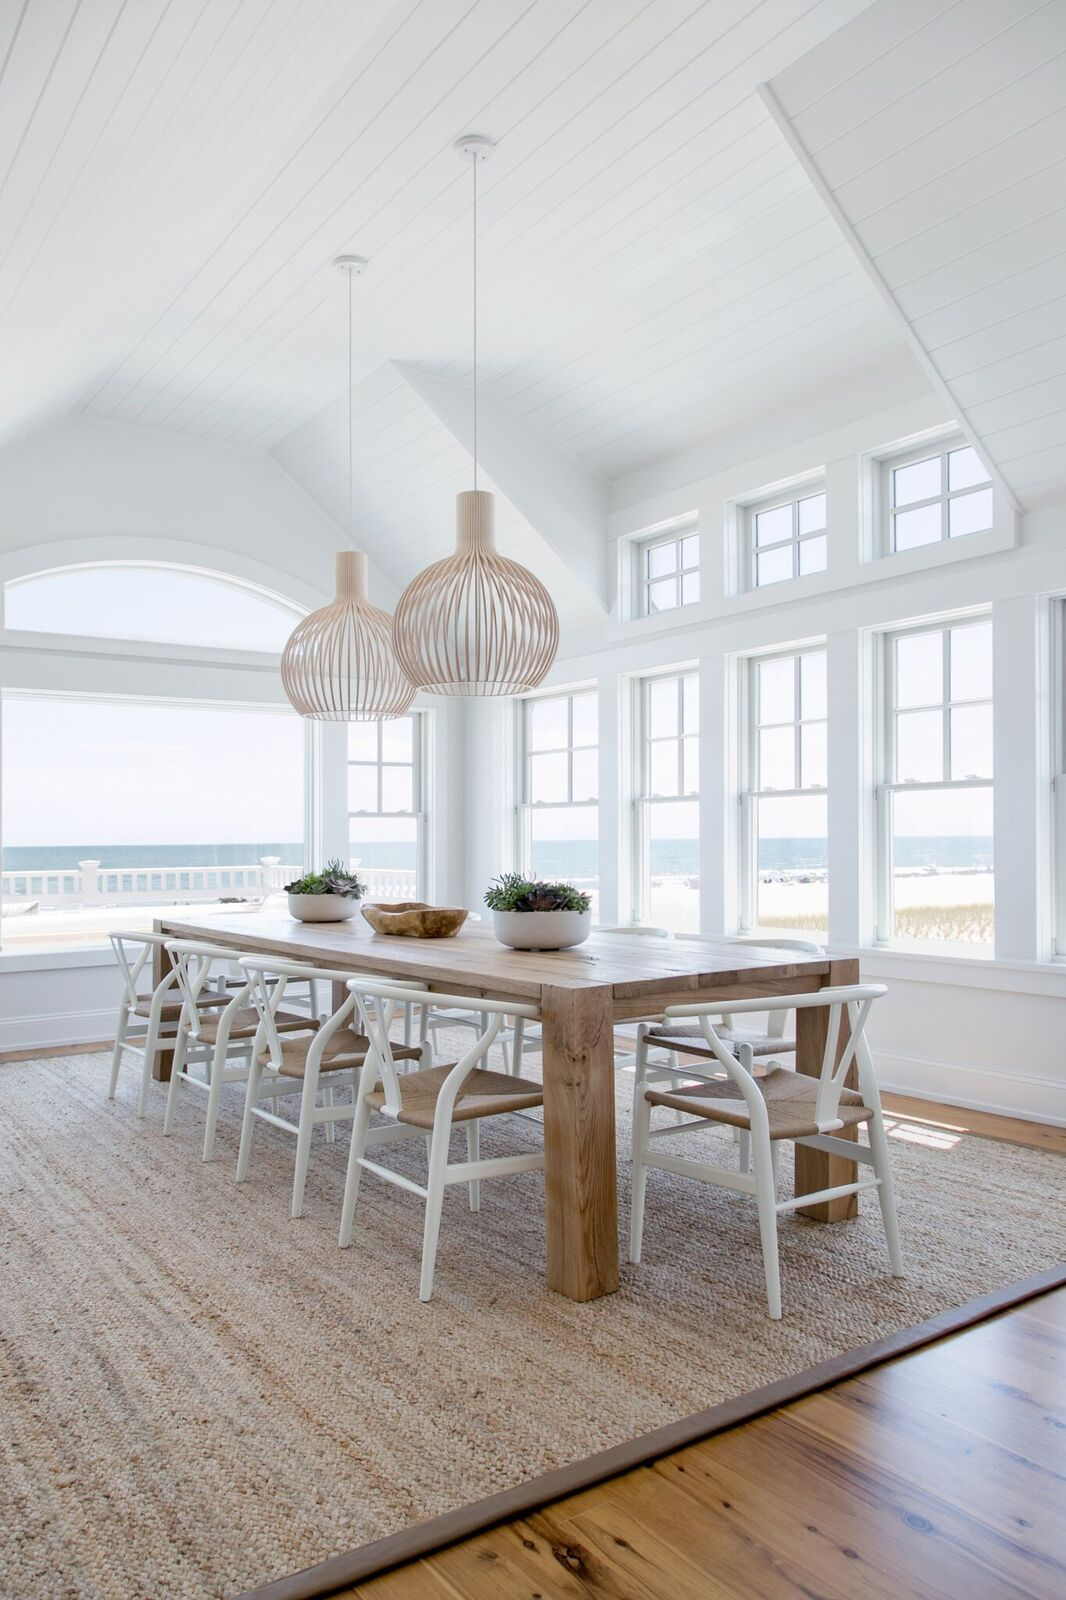 Fenster Esszimmer This Seaside House Is Giving Us So Many Beachy Decor Ideas Help